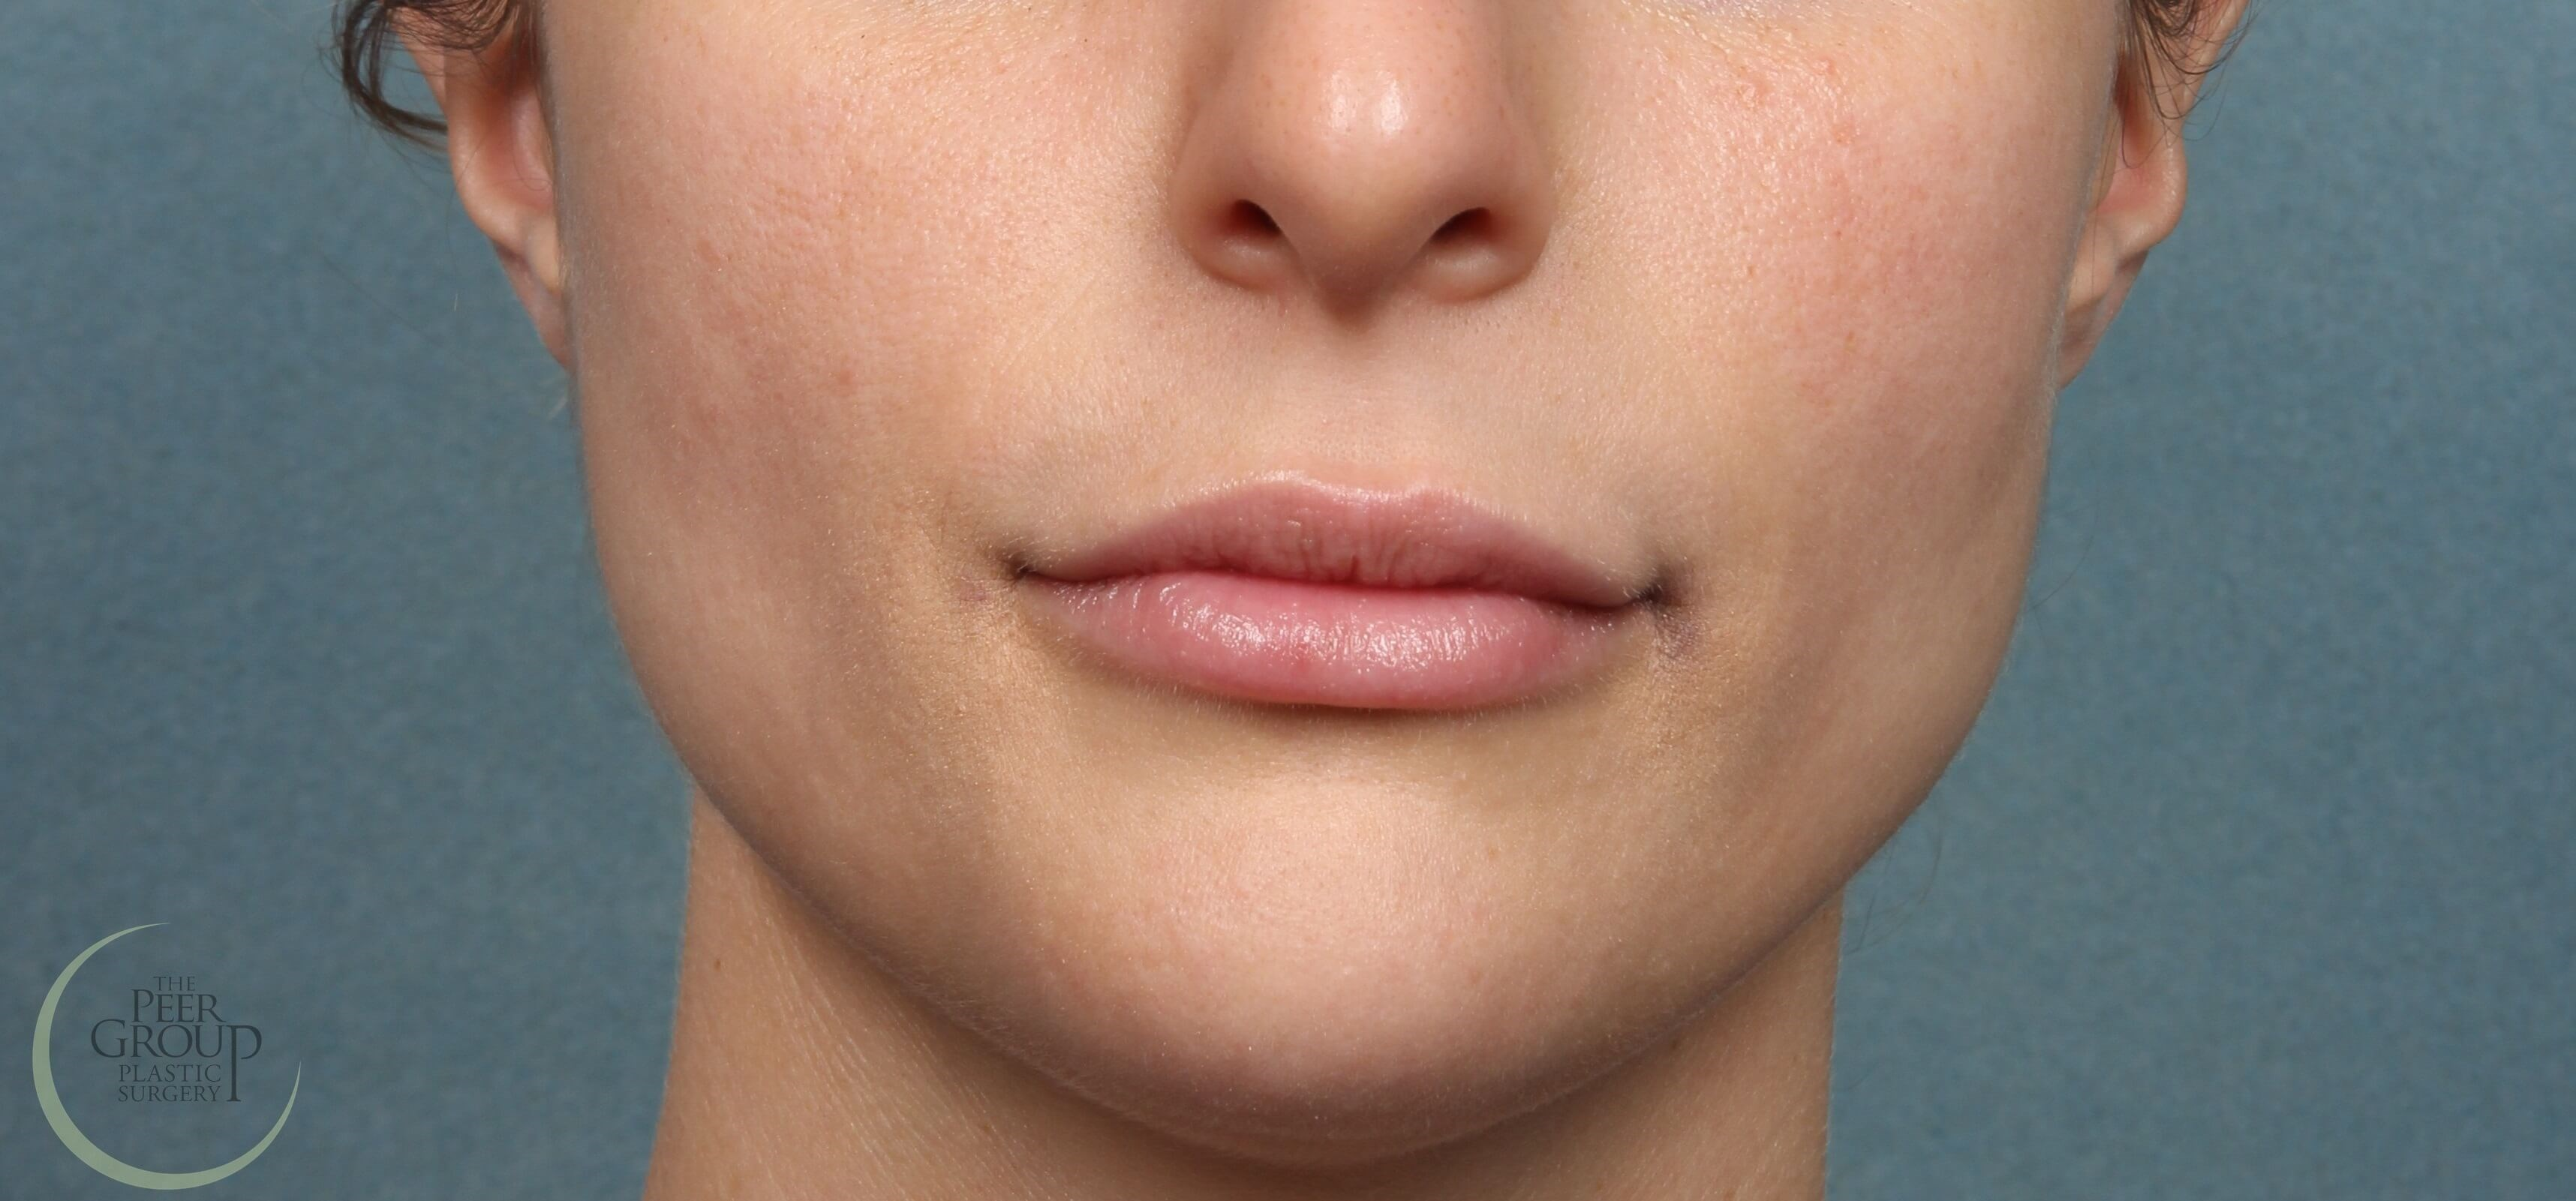 NJ Lip Augmenation with Filler 1 Week After Juvederm